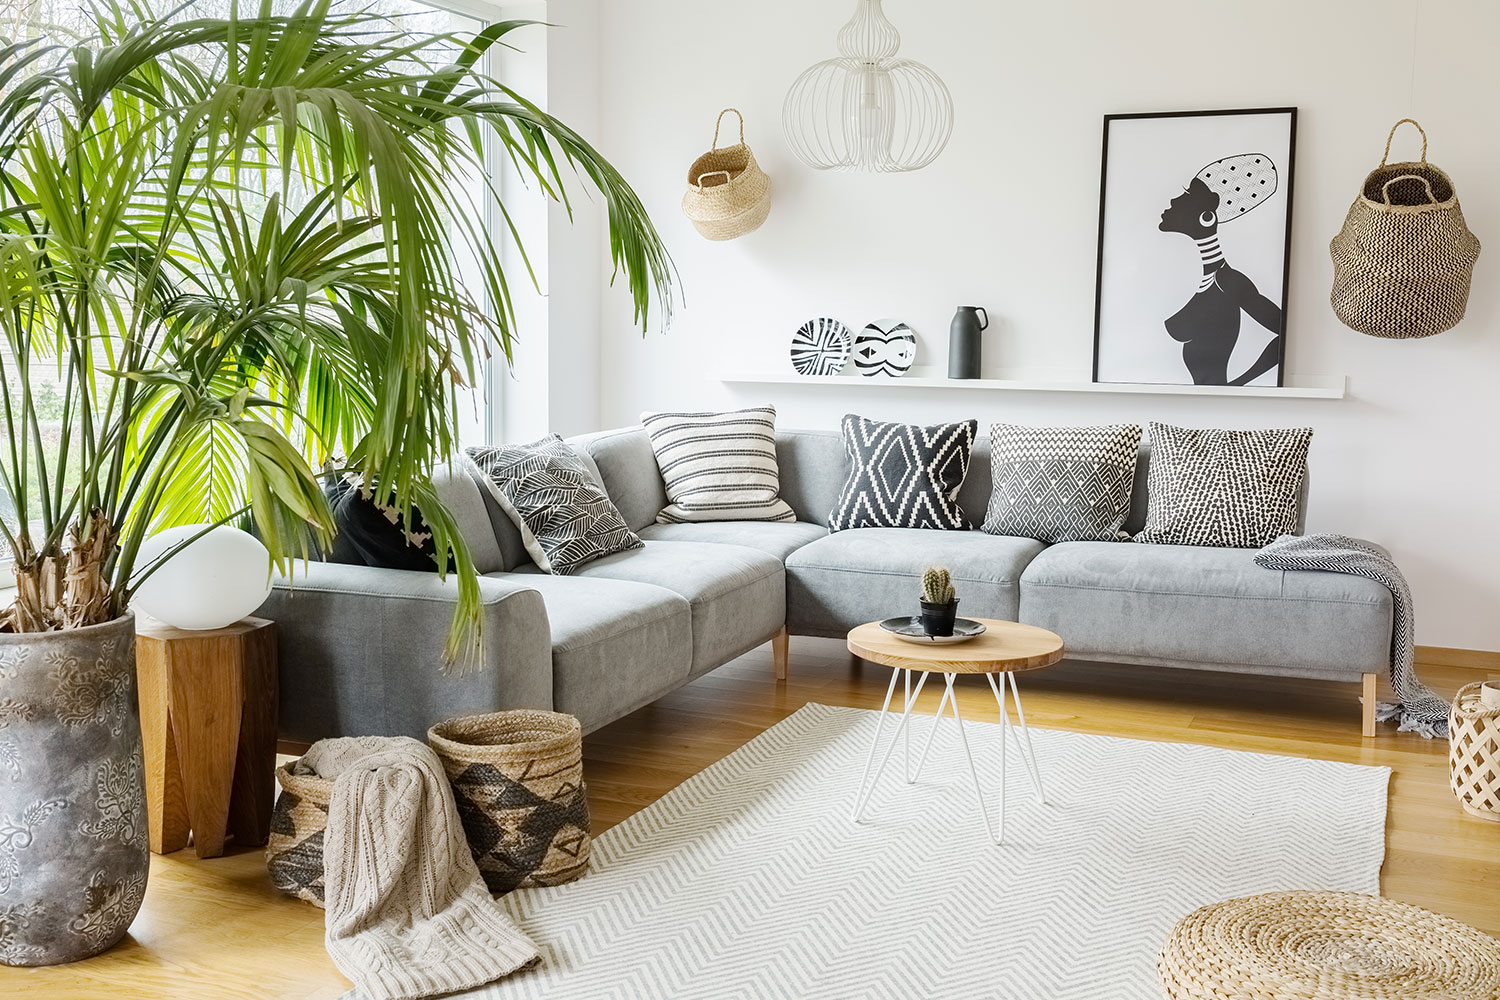 19 Large Indoor Plants For Your, Living Room Plants